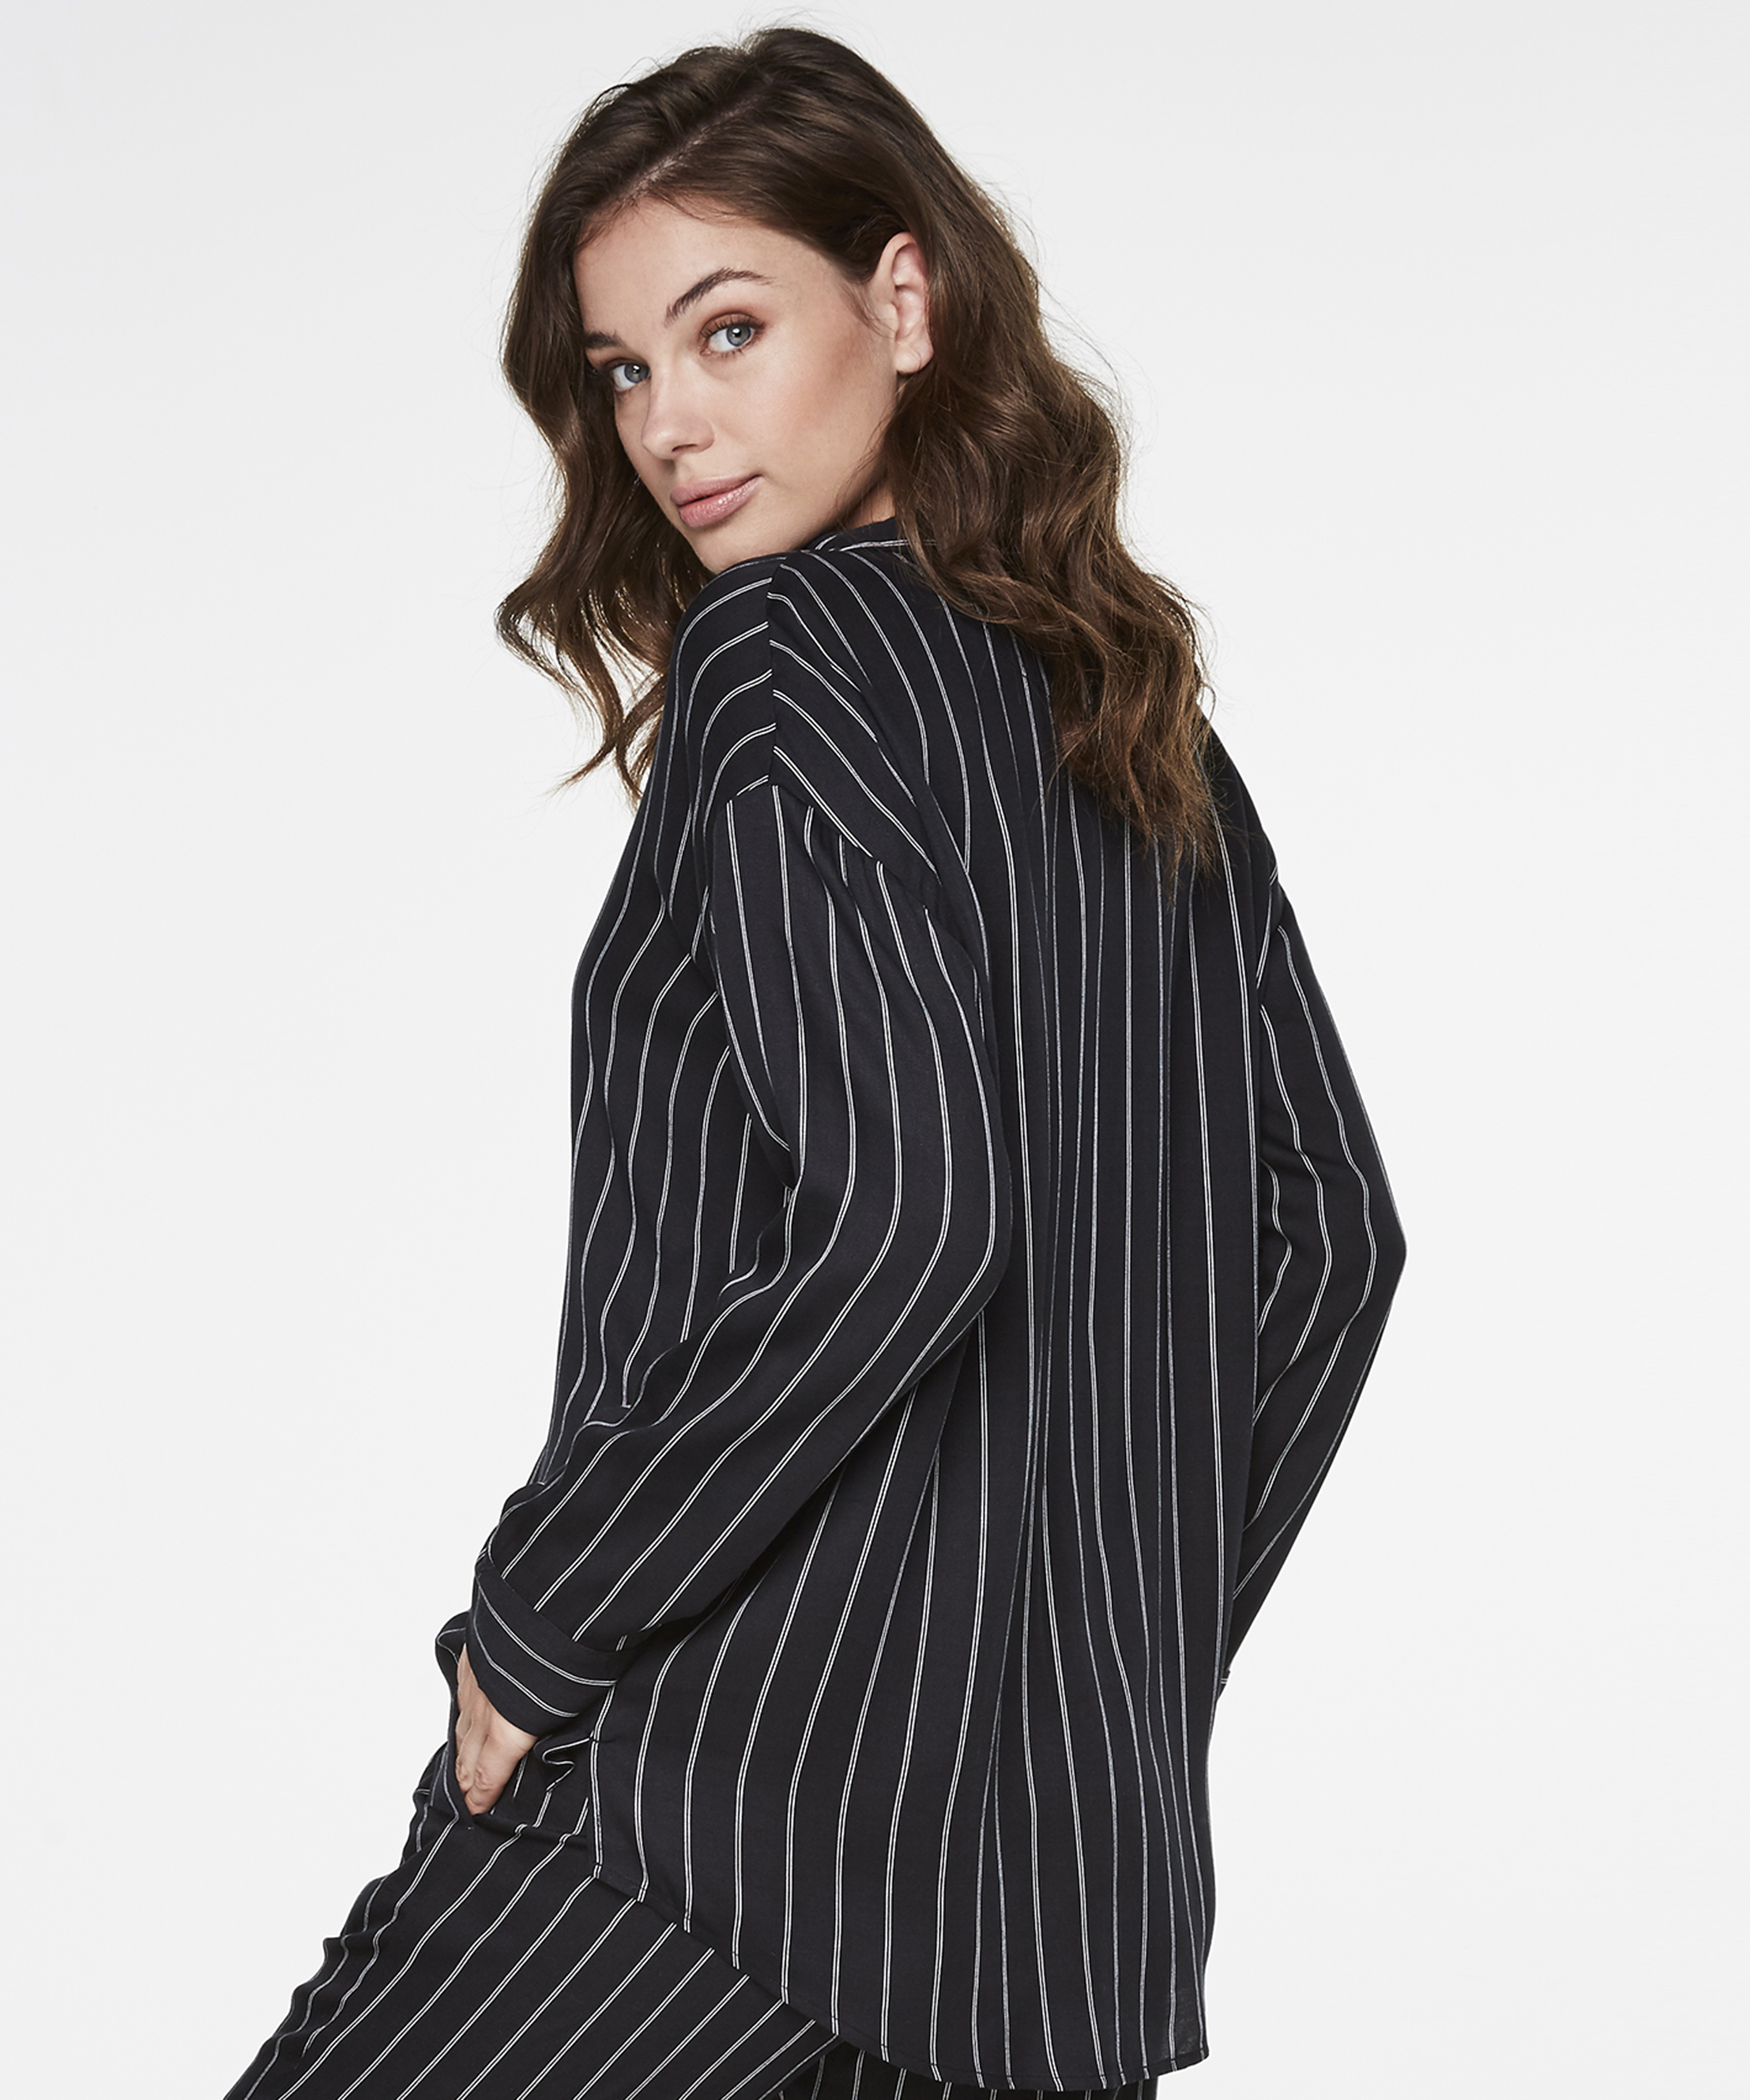 Pyjamatop Woven Striped, Zwart, main